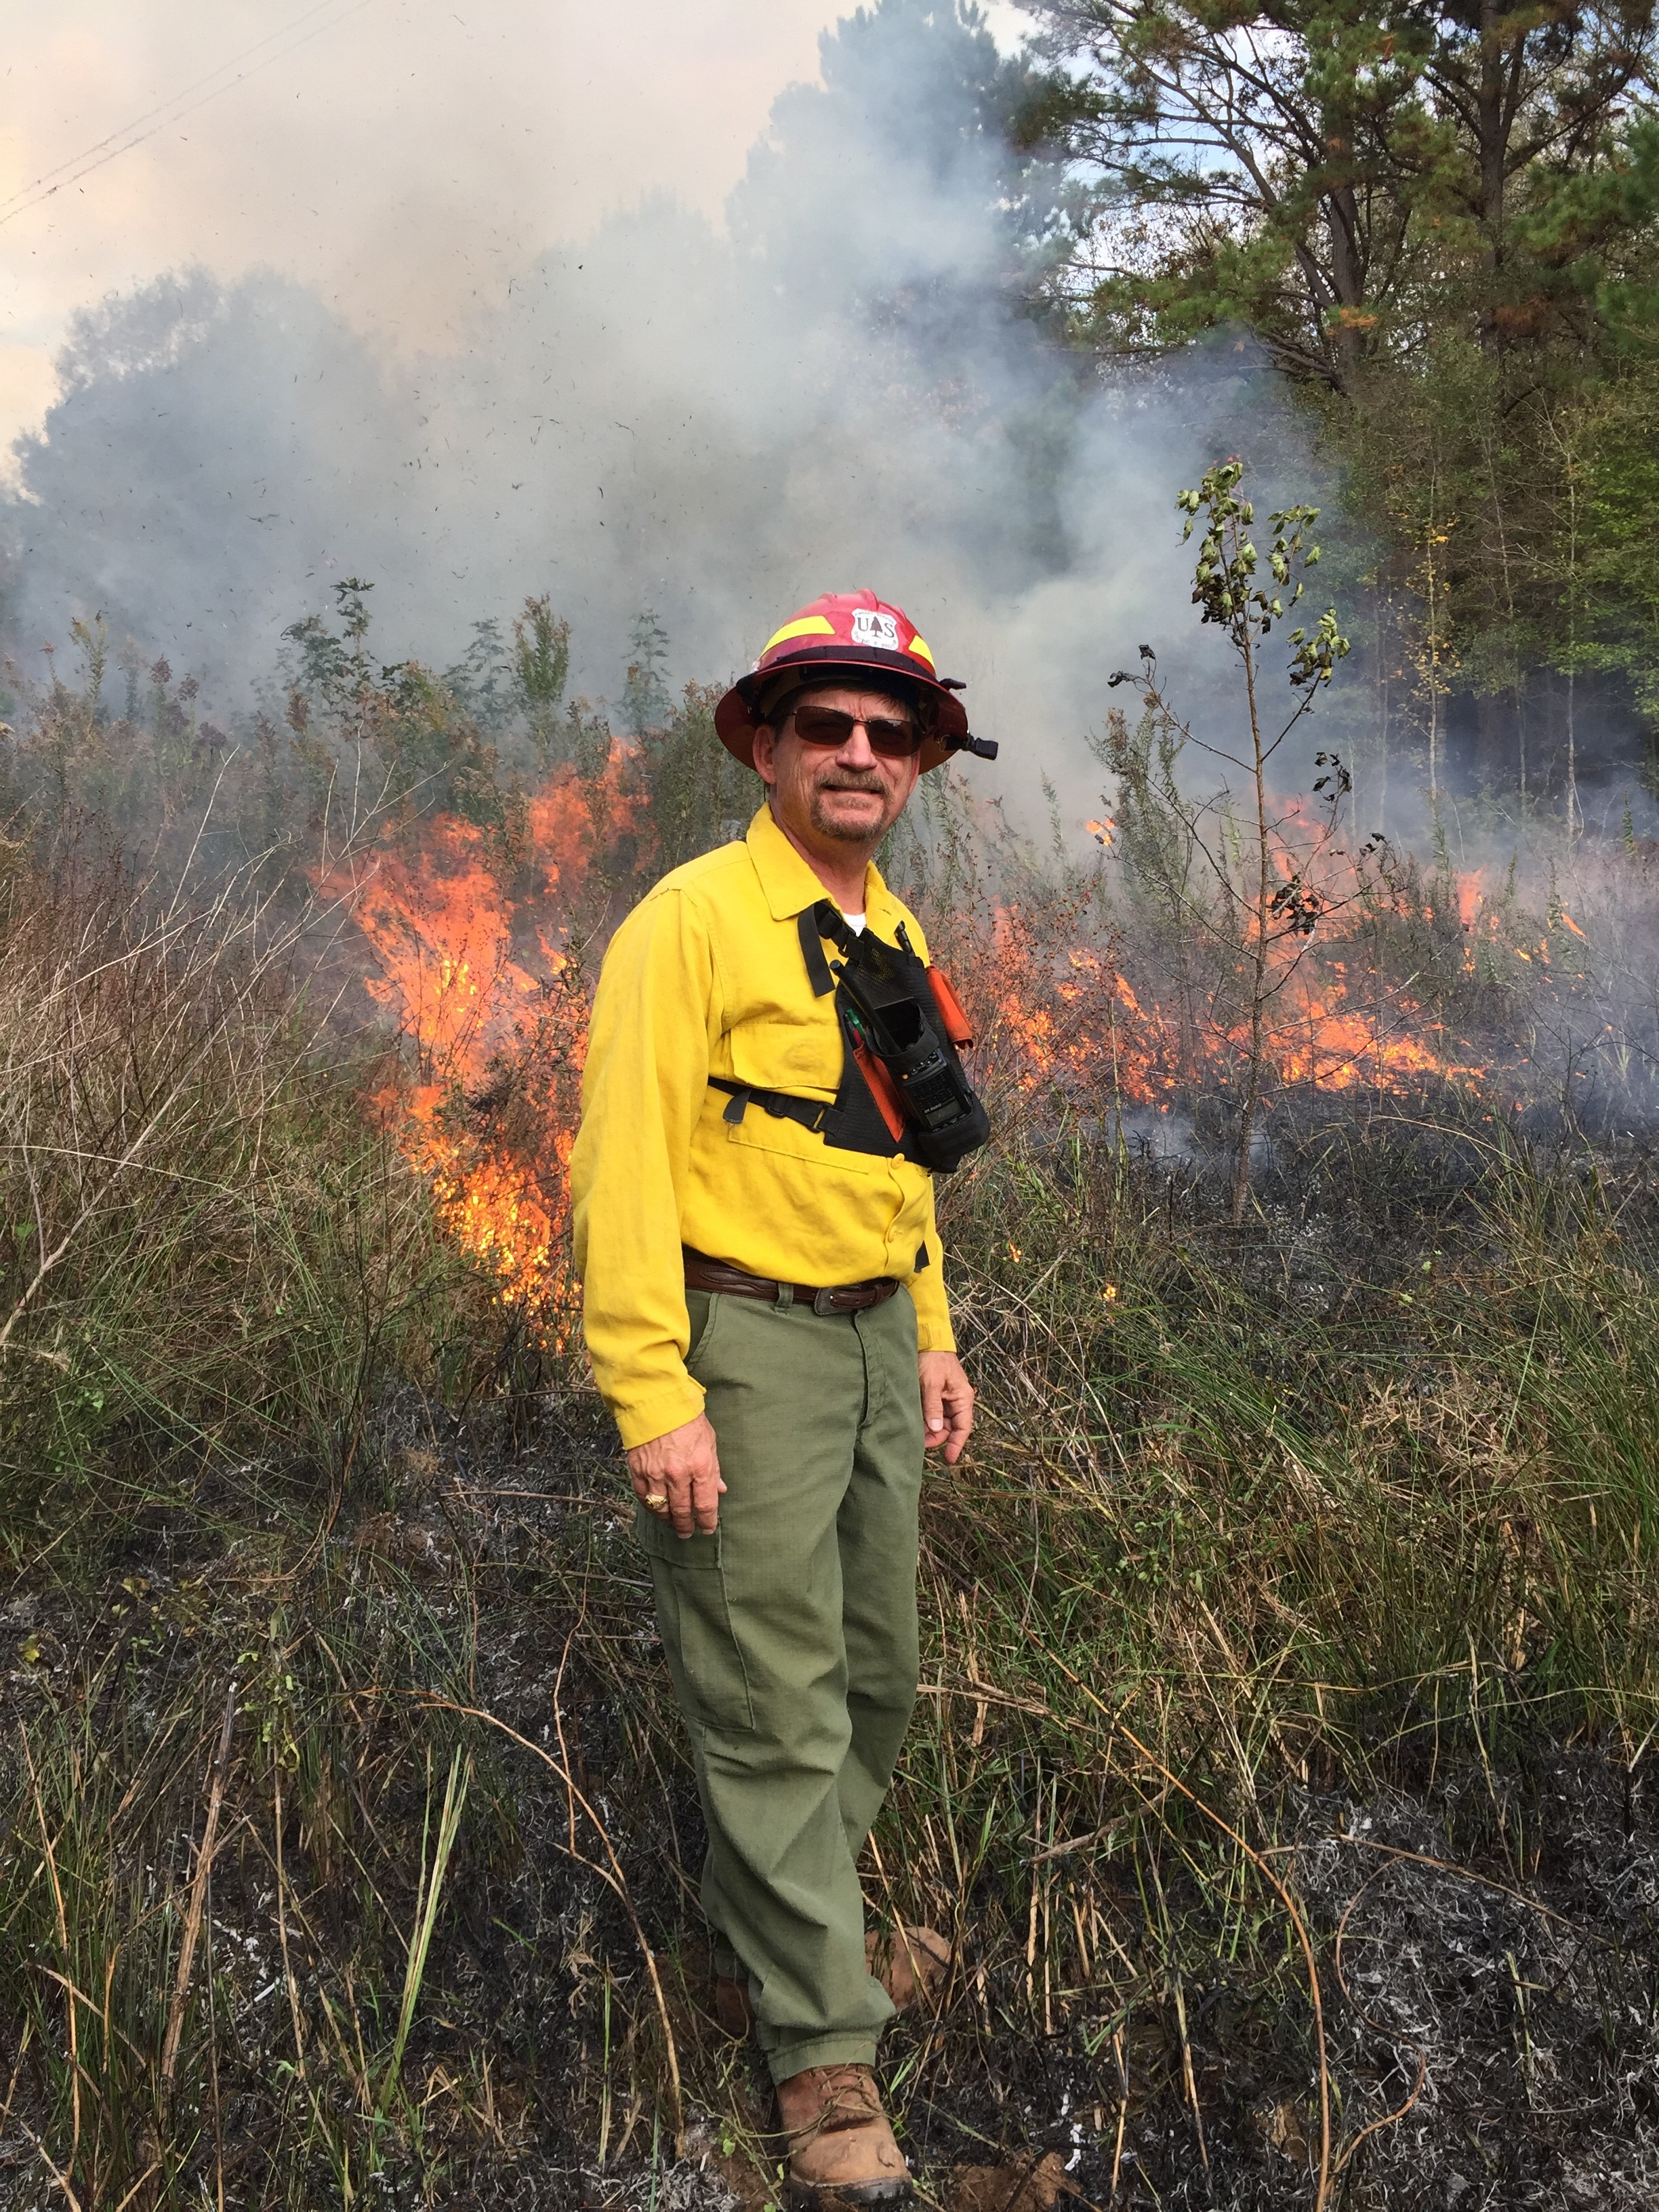 Your TLIT Coordinator assisting with prescribed burn training at Alazan Bayou WMA with TWPD and the Longleaf Alliance. Photo credit: Kent Evans